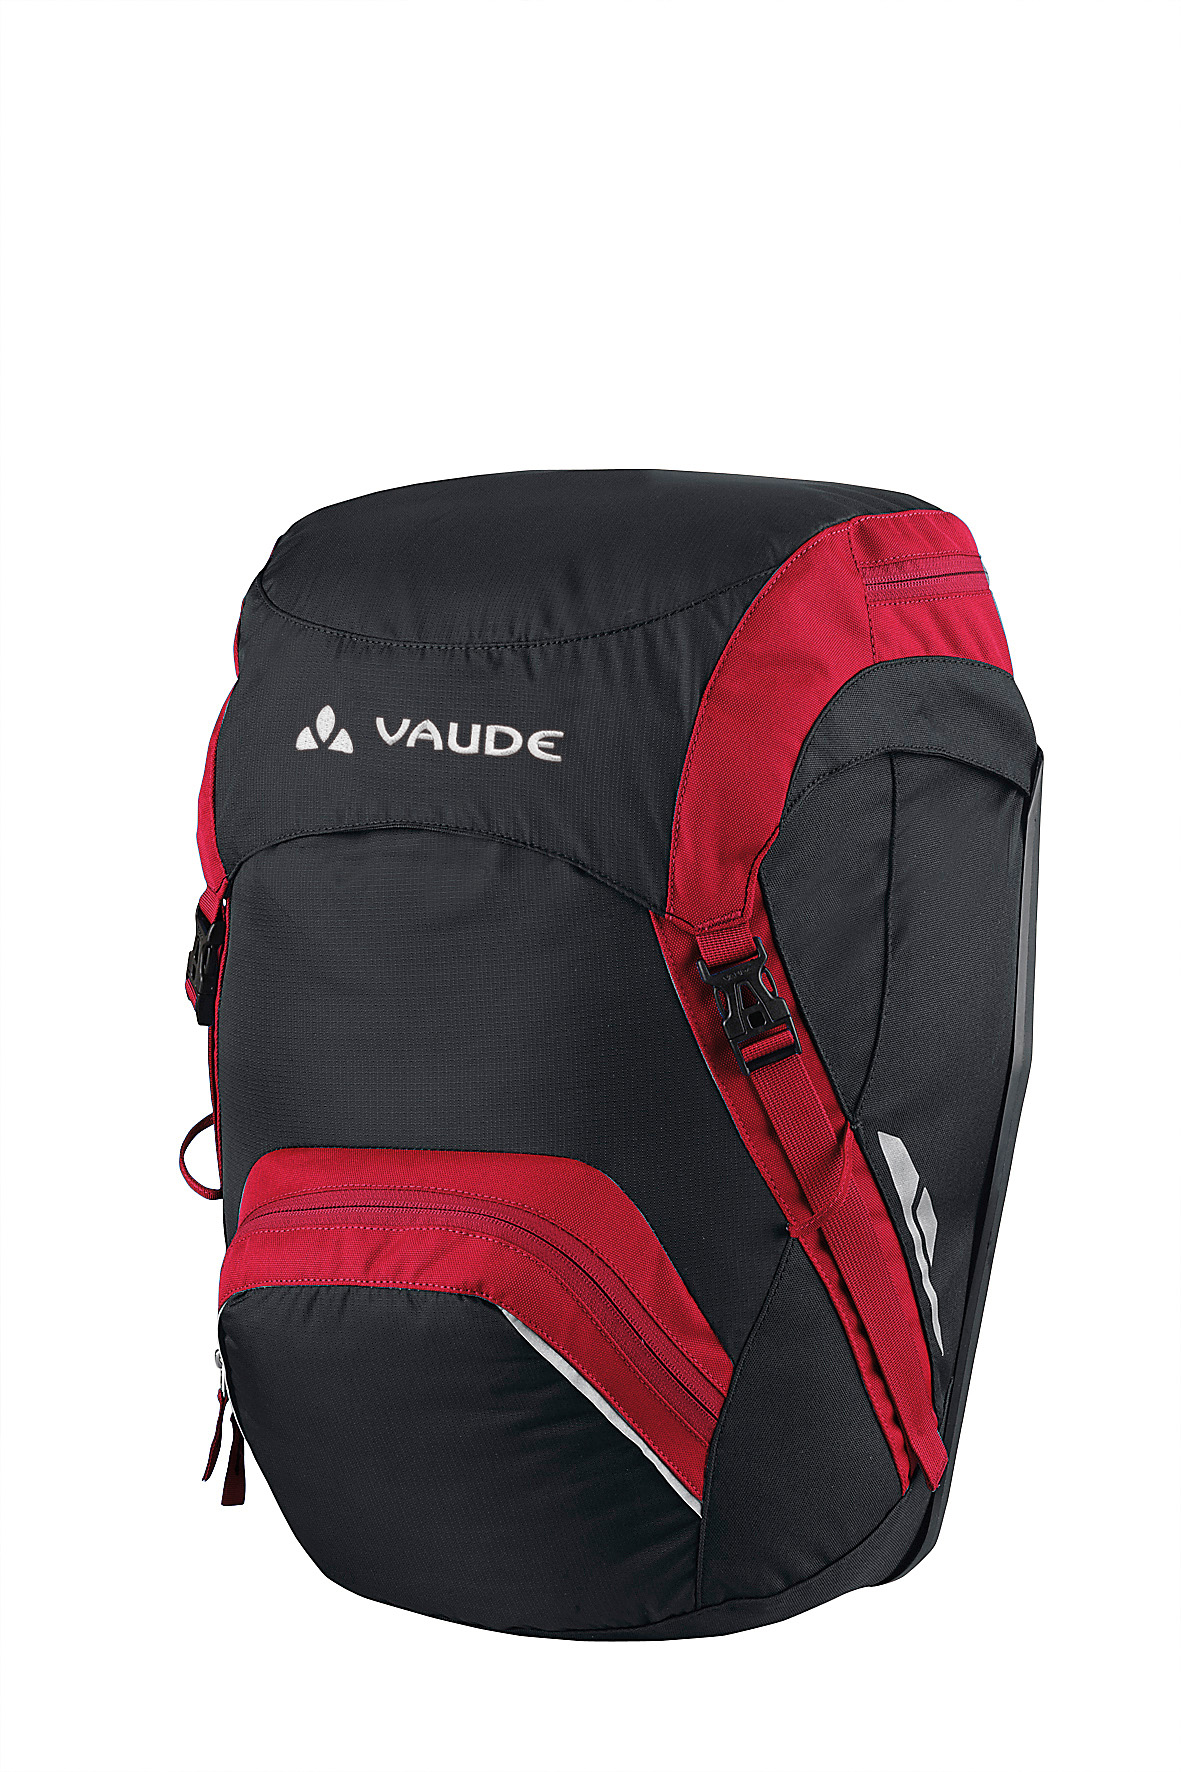 VAUDE Road Master Front black/red  - schneider-sports